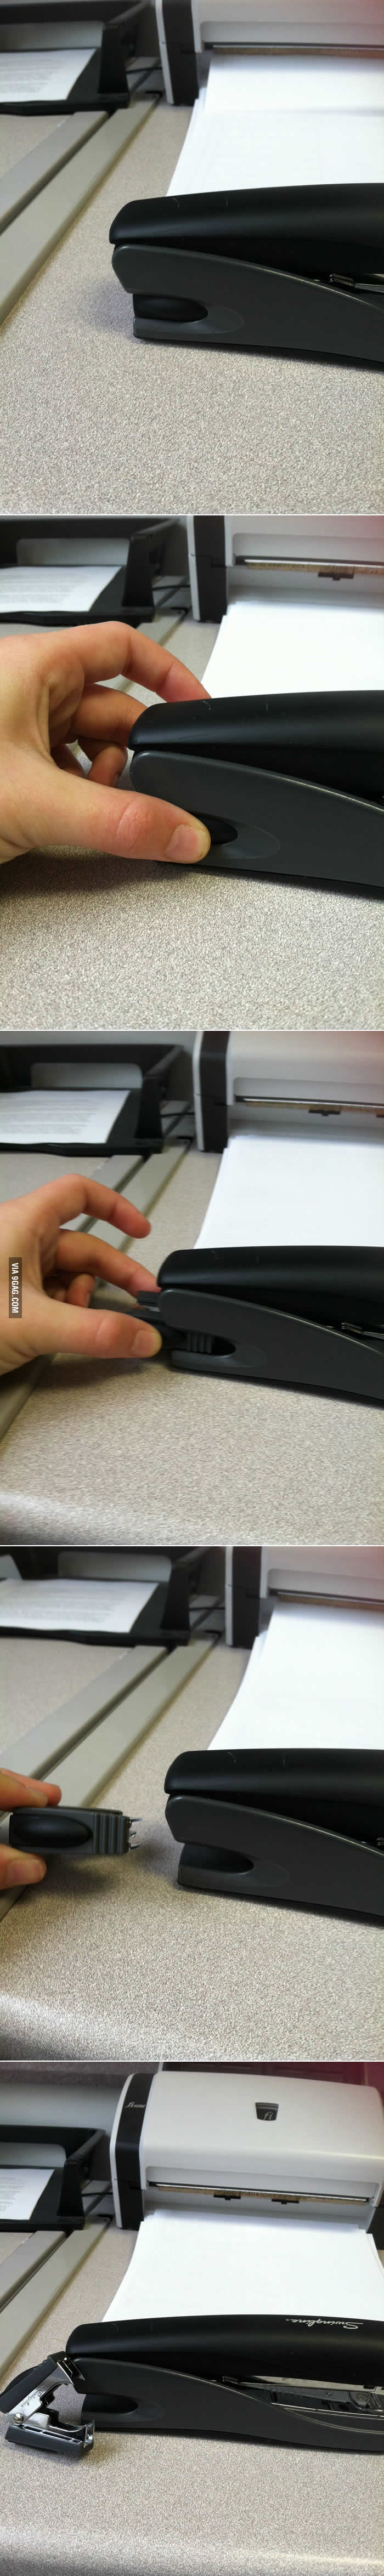 Overly excited when I found out my stapler can do this.